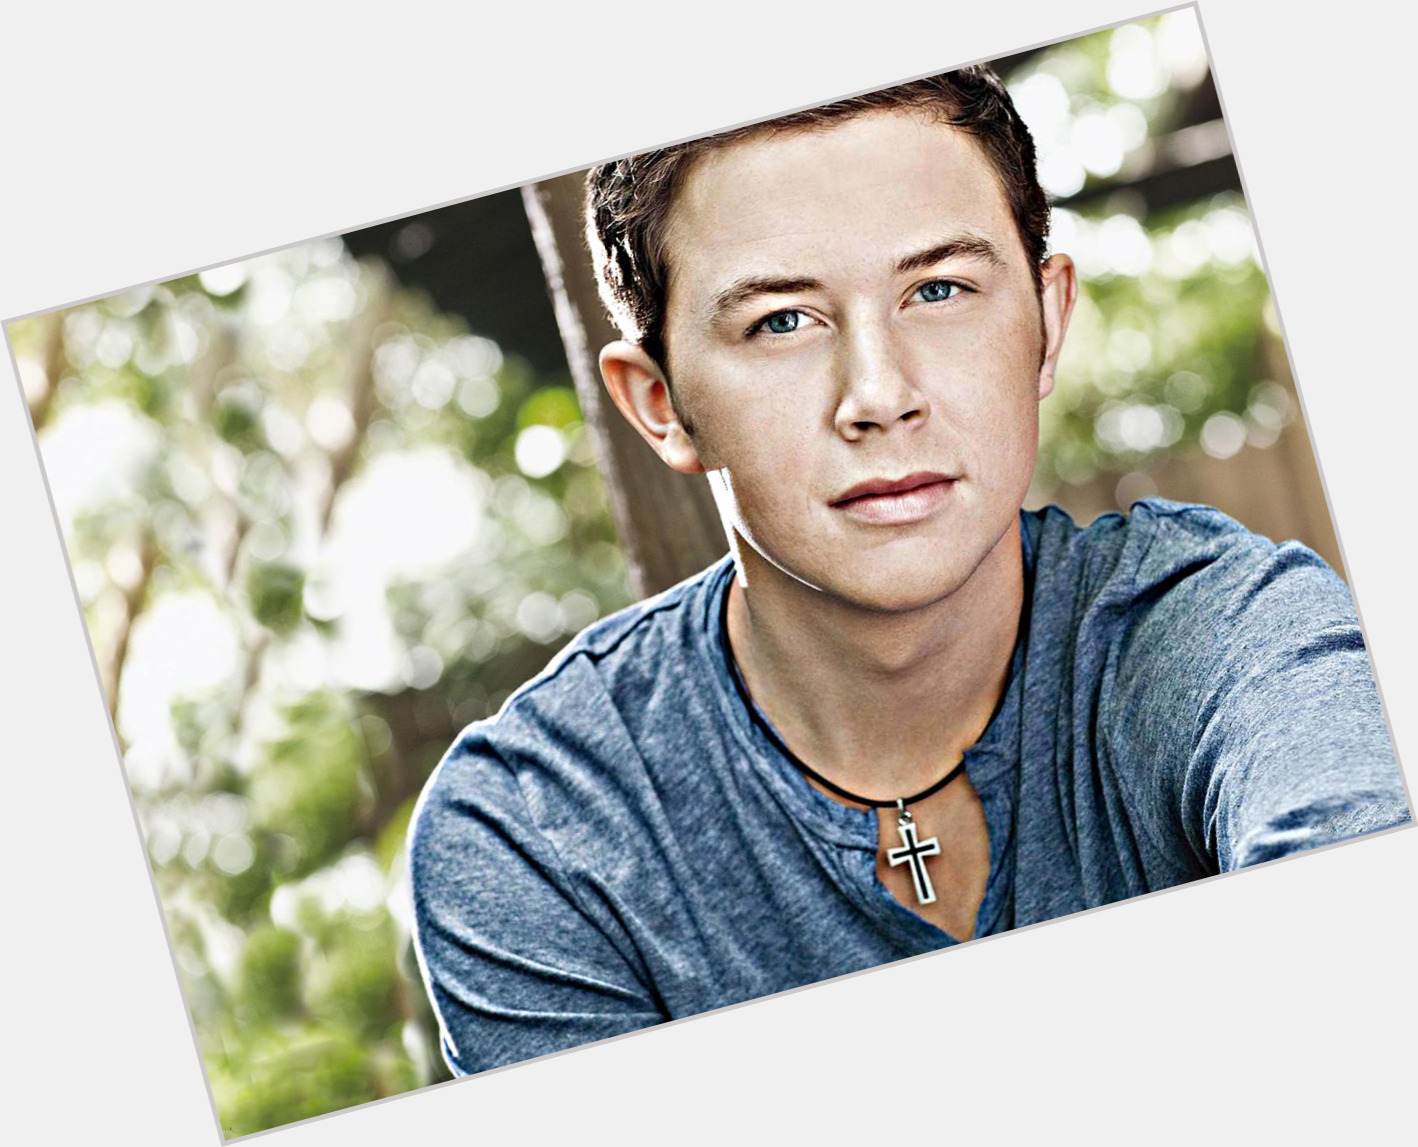 who is scotty mccreery dating in 2014